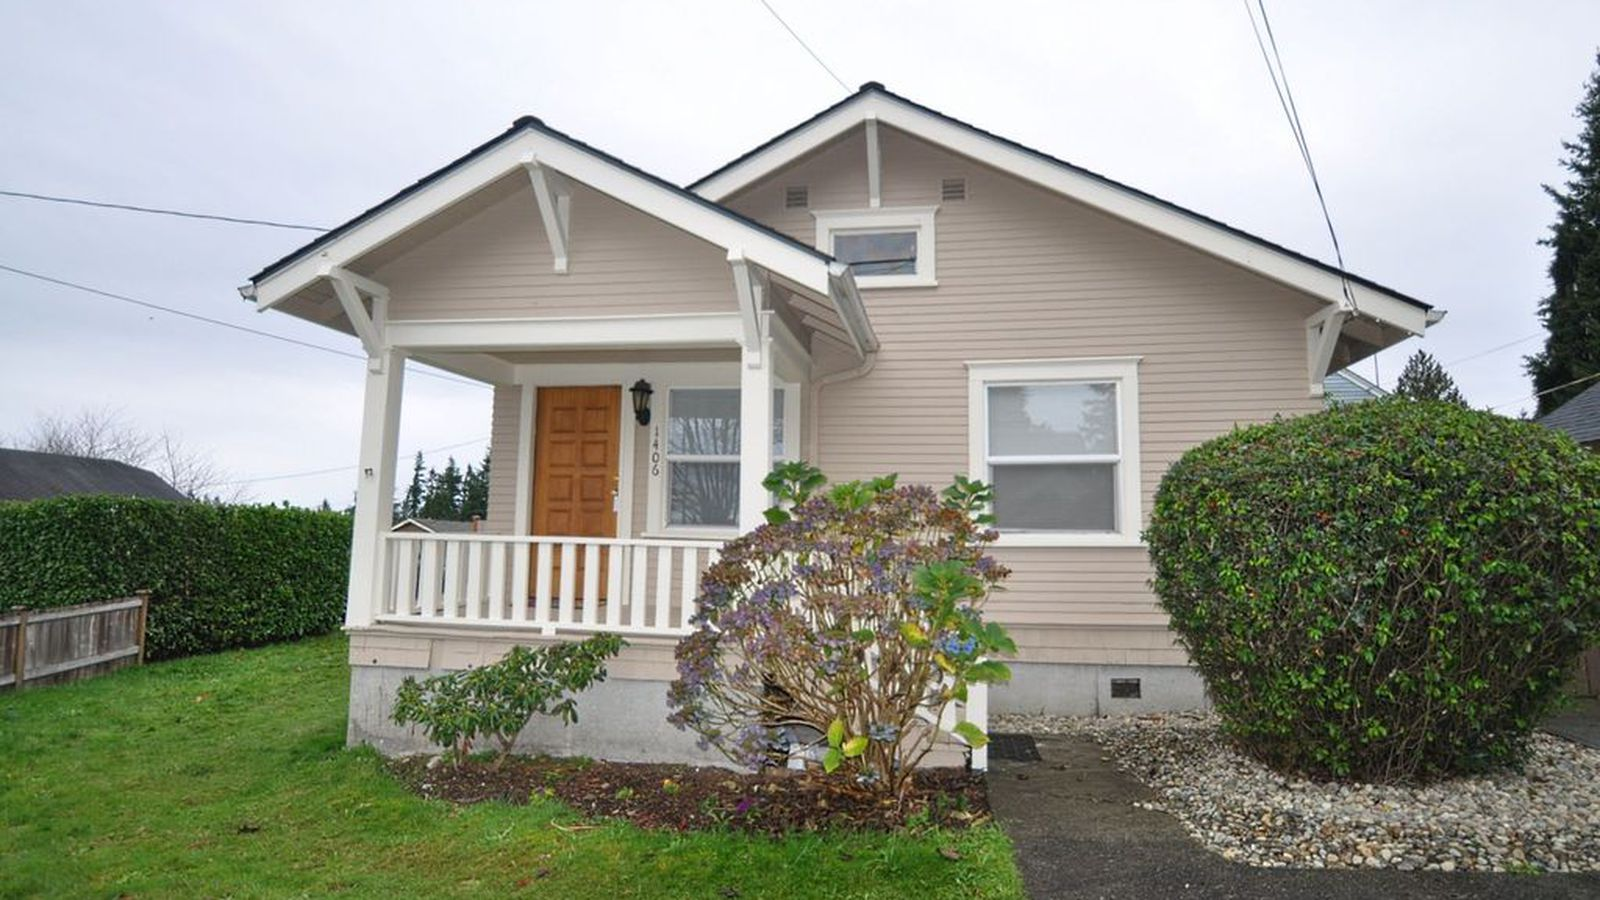 Cute everett tiny home available for under 200k curbed for Houses for 200k